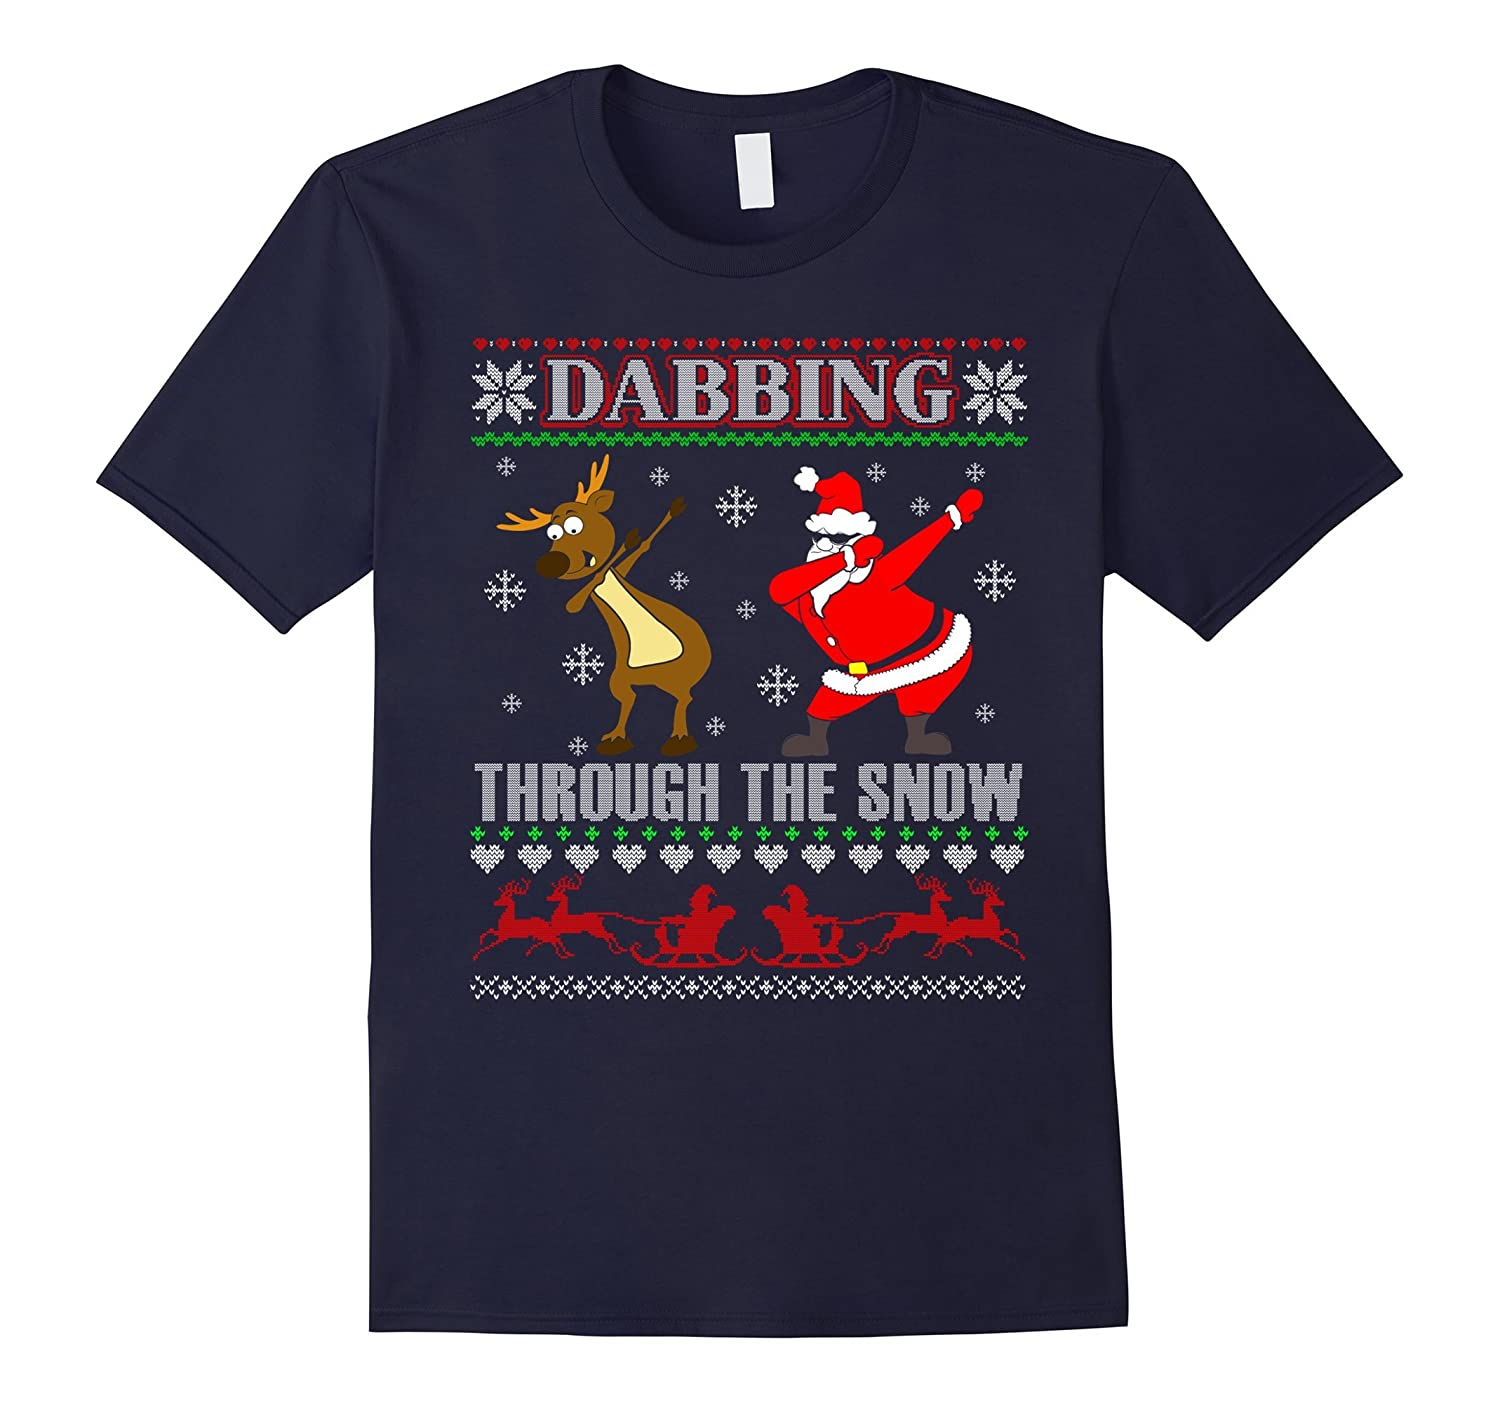 c666fde96 Dabbing Through The Snow Tshirt Funny Santa Reindeer Gifts-ANZ ...